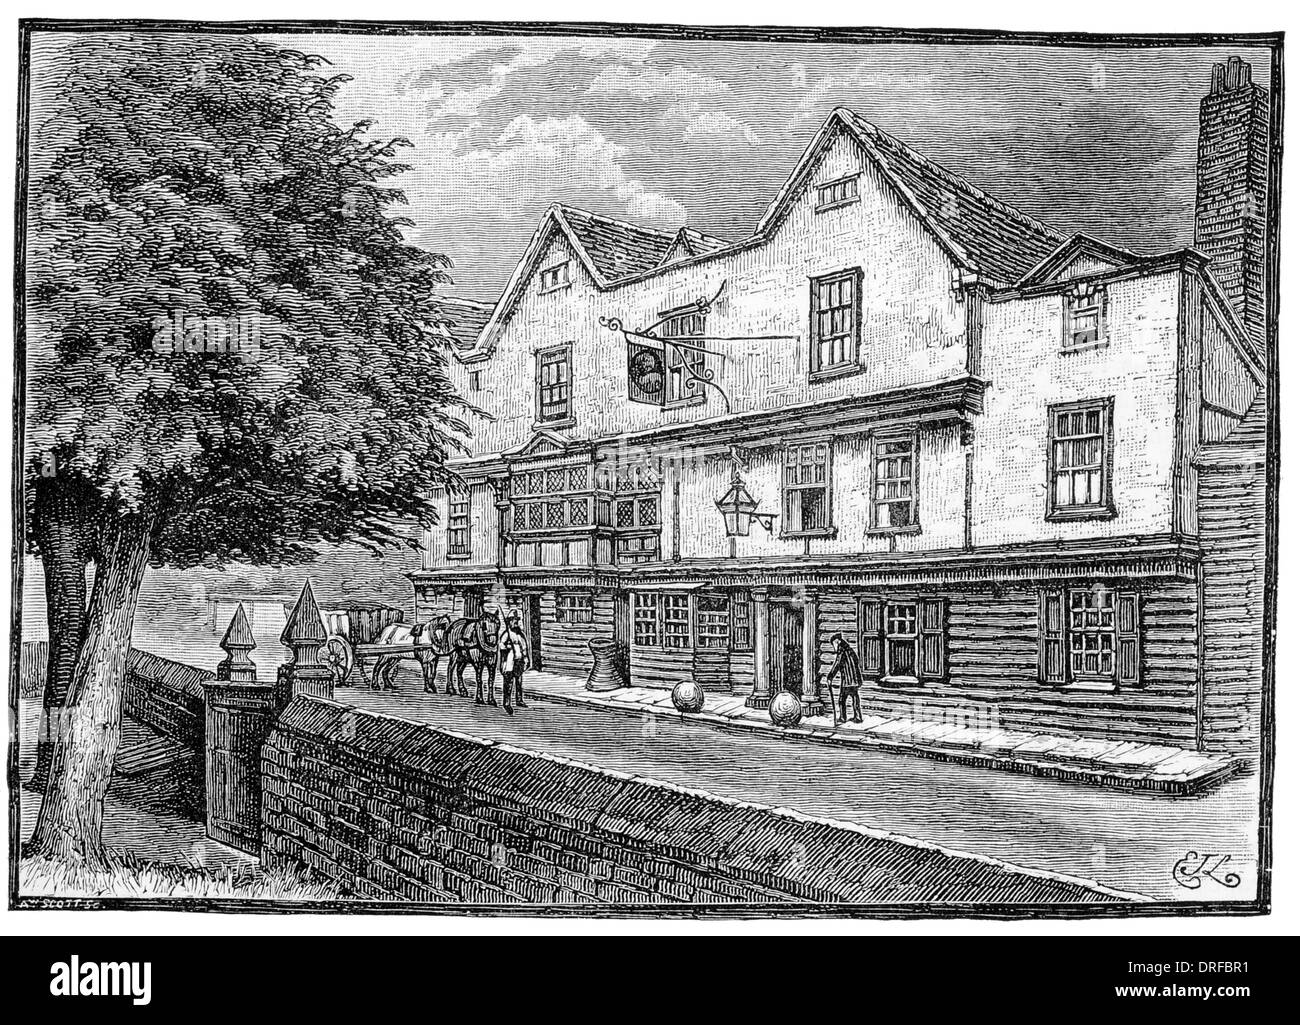 The King's Head Chigwell civil parish Epping Forest district of Essex London circa 1880 - Stock Image